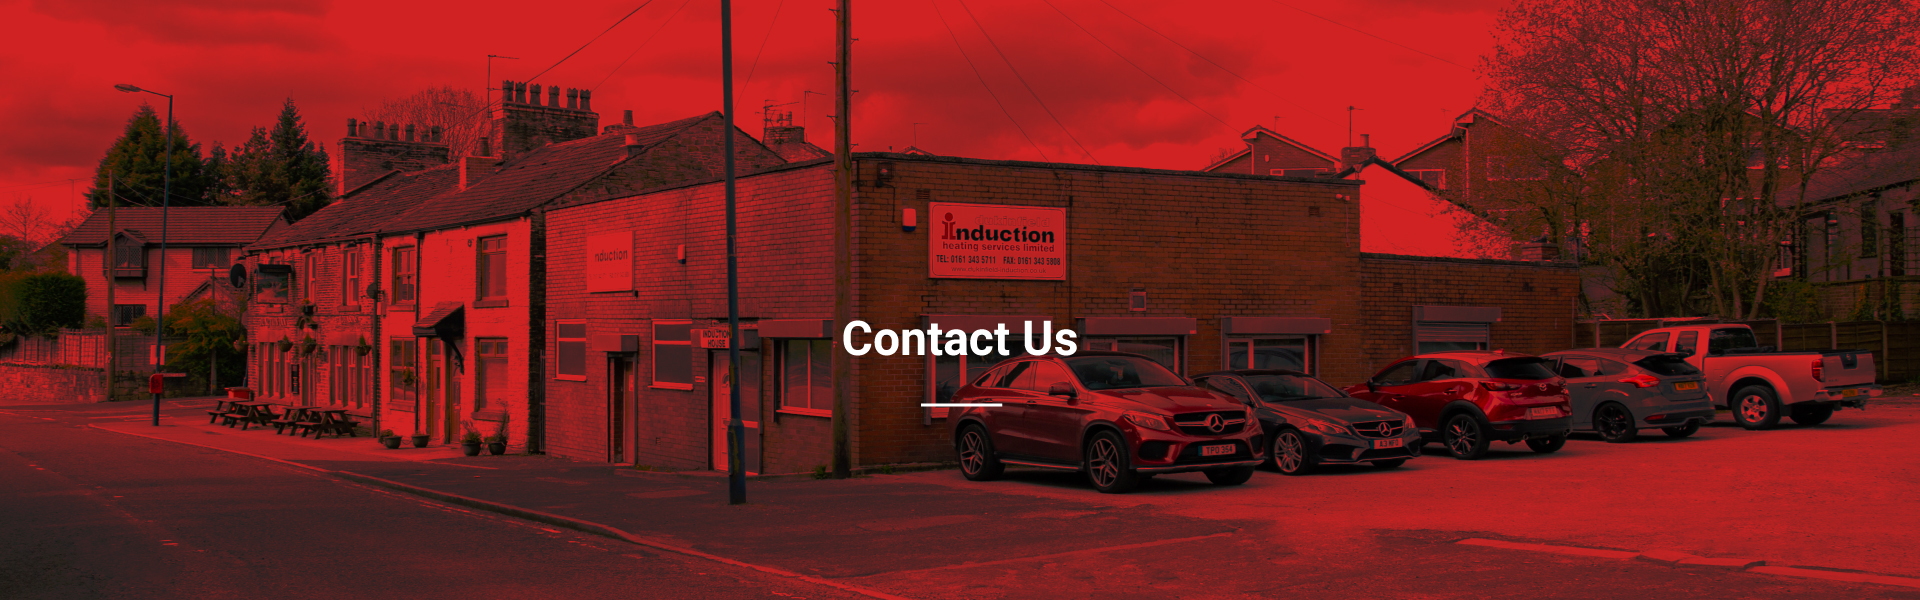 Header Banner for Contact us page